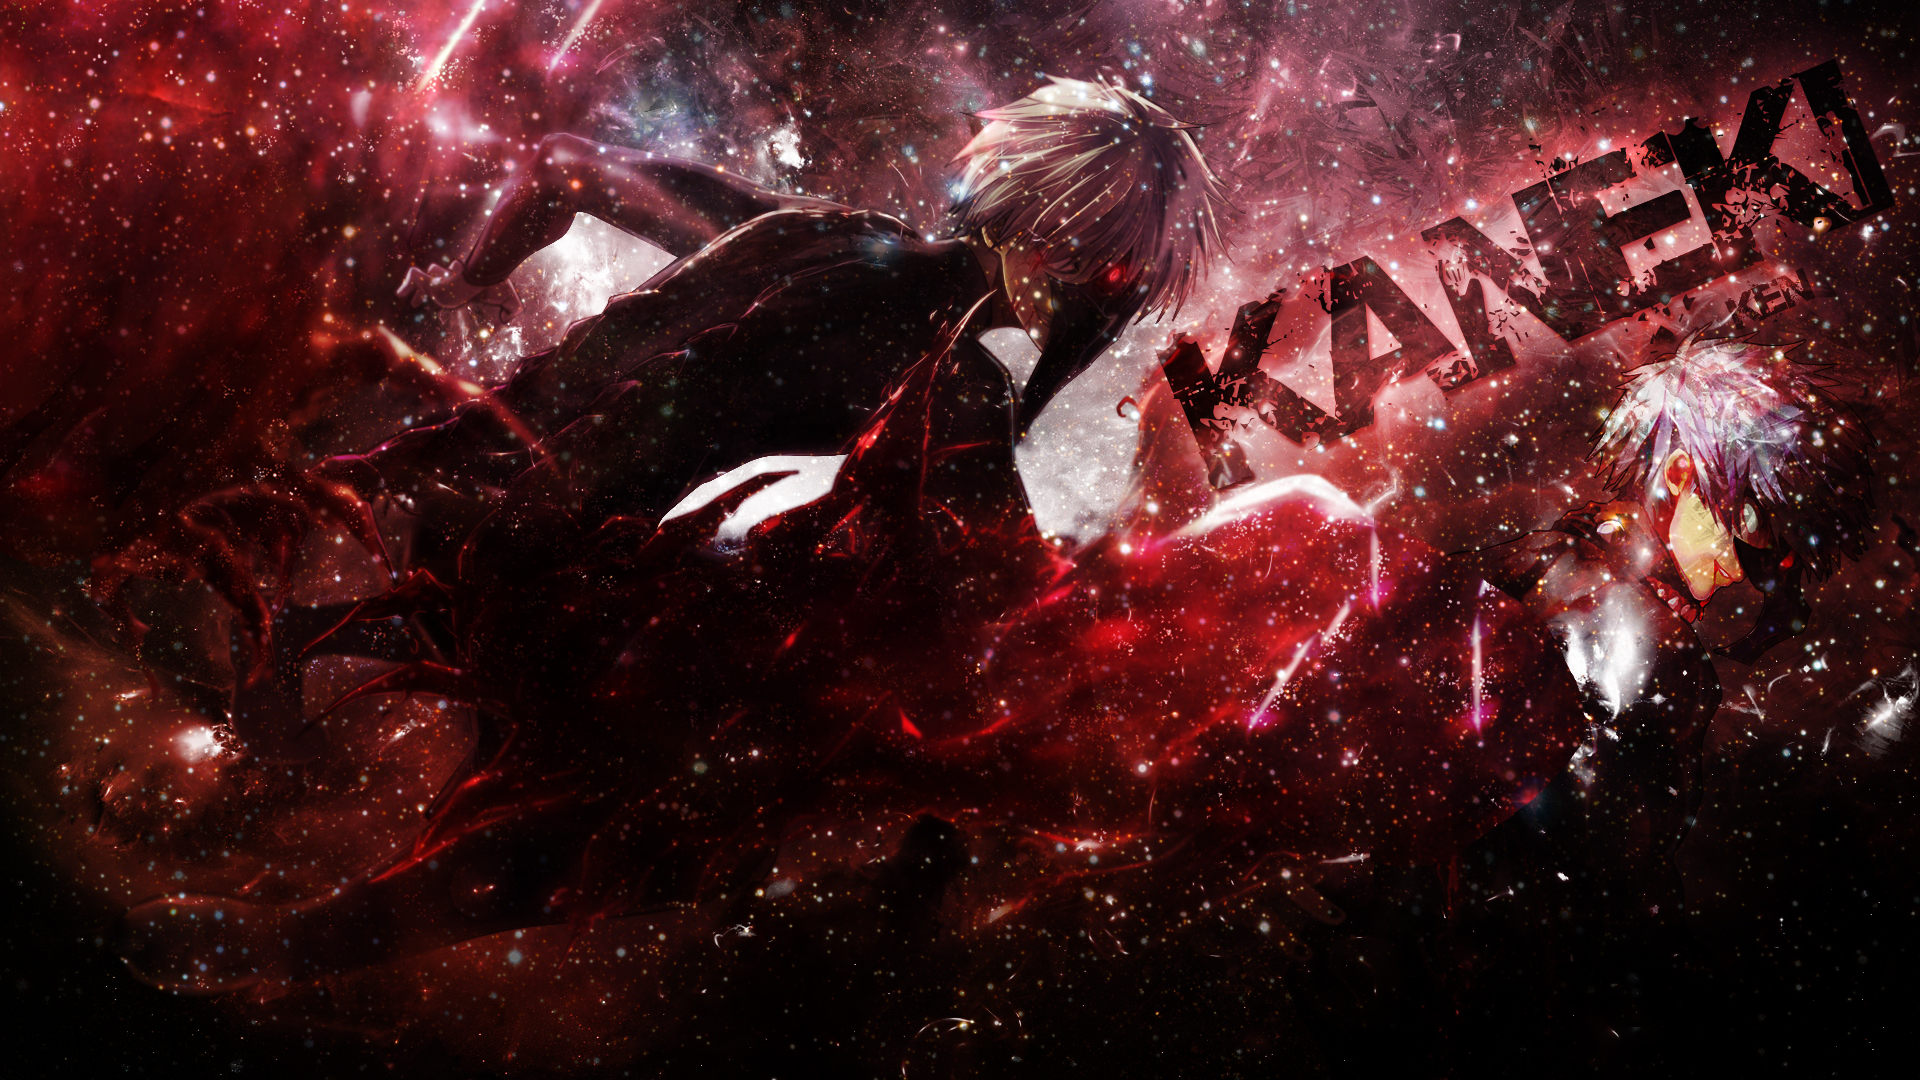 Alpha Coders Wallpaper Abyss Anime Tokyo Ghoul 629532